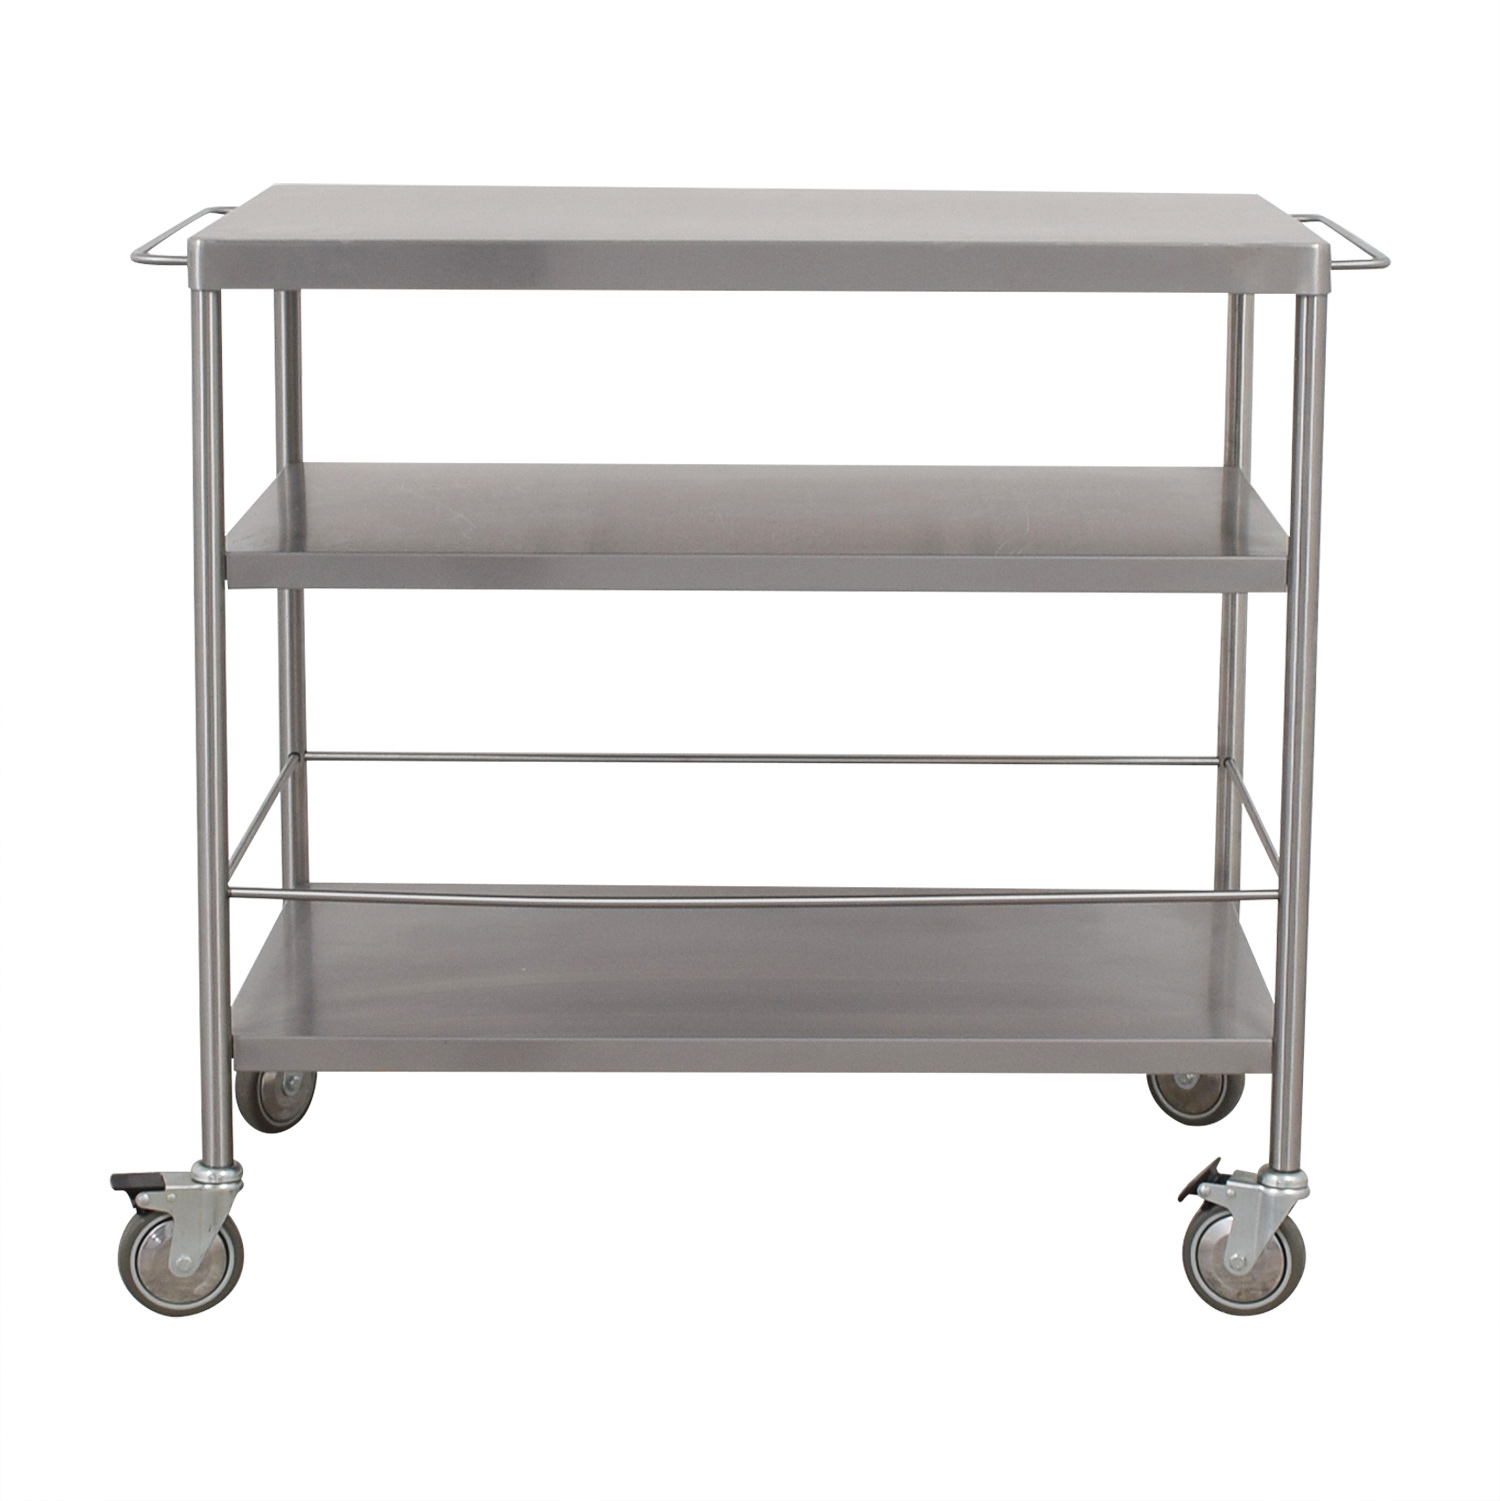 IKEA IKEA Stainless Steel Kitchen Cart / Tables